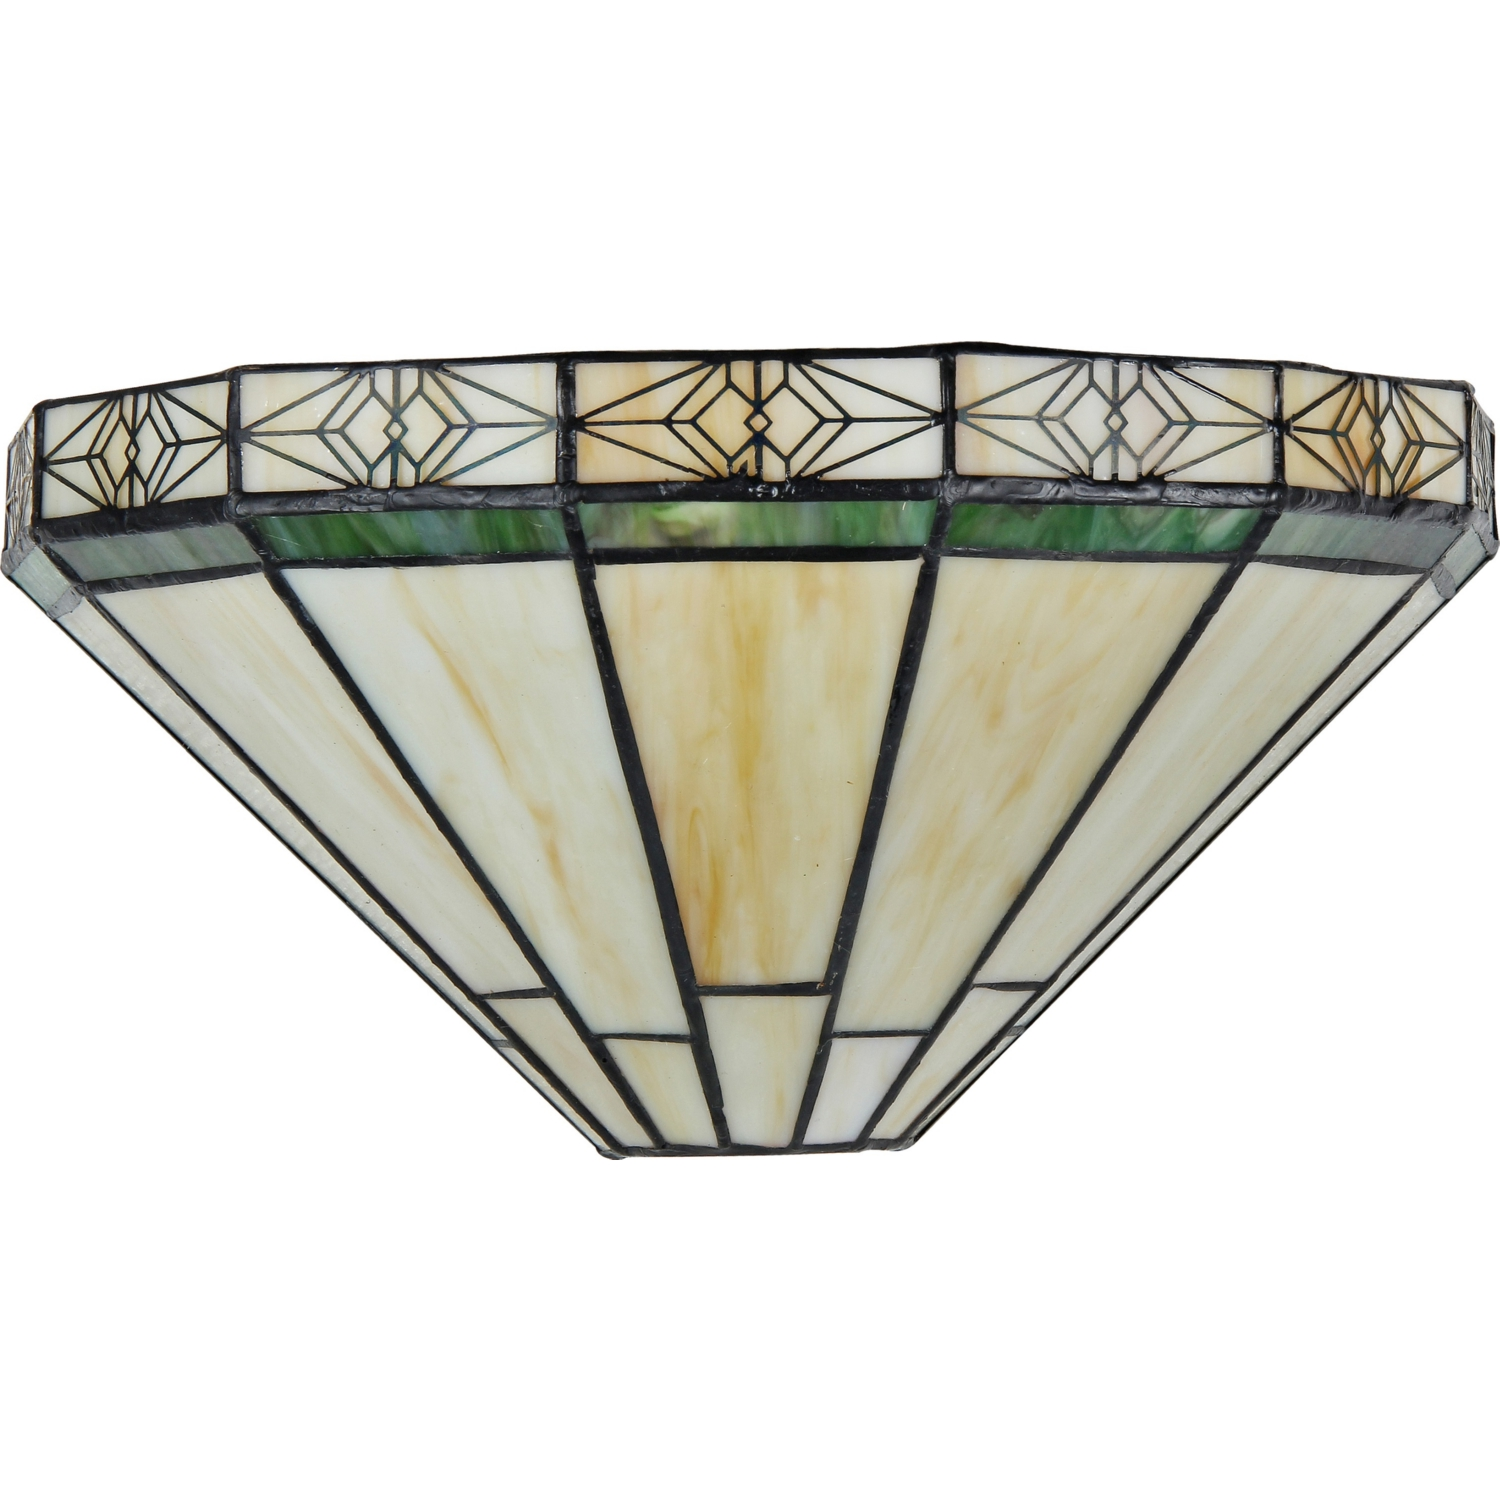 Chloe lighting ch31315mi12 ws1 belle tiffany style 1 light mission chloe lighting belle tiffany style 1 light mission wall sconce 12 wide amipublicfo Gallery